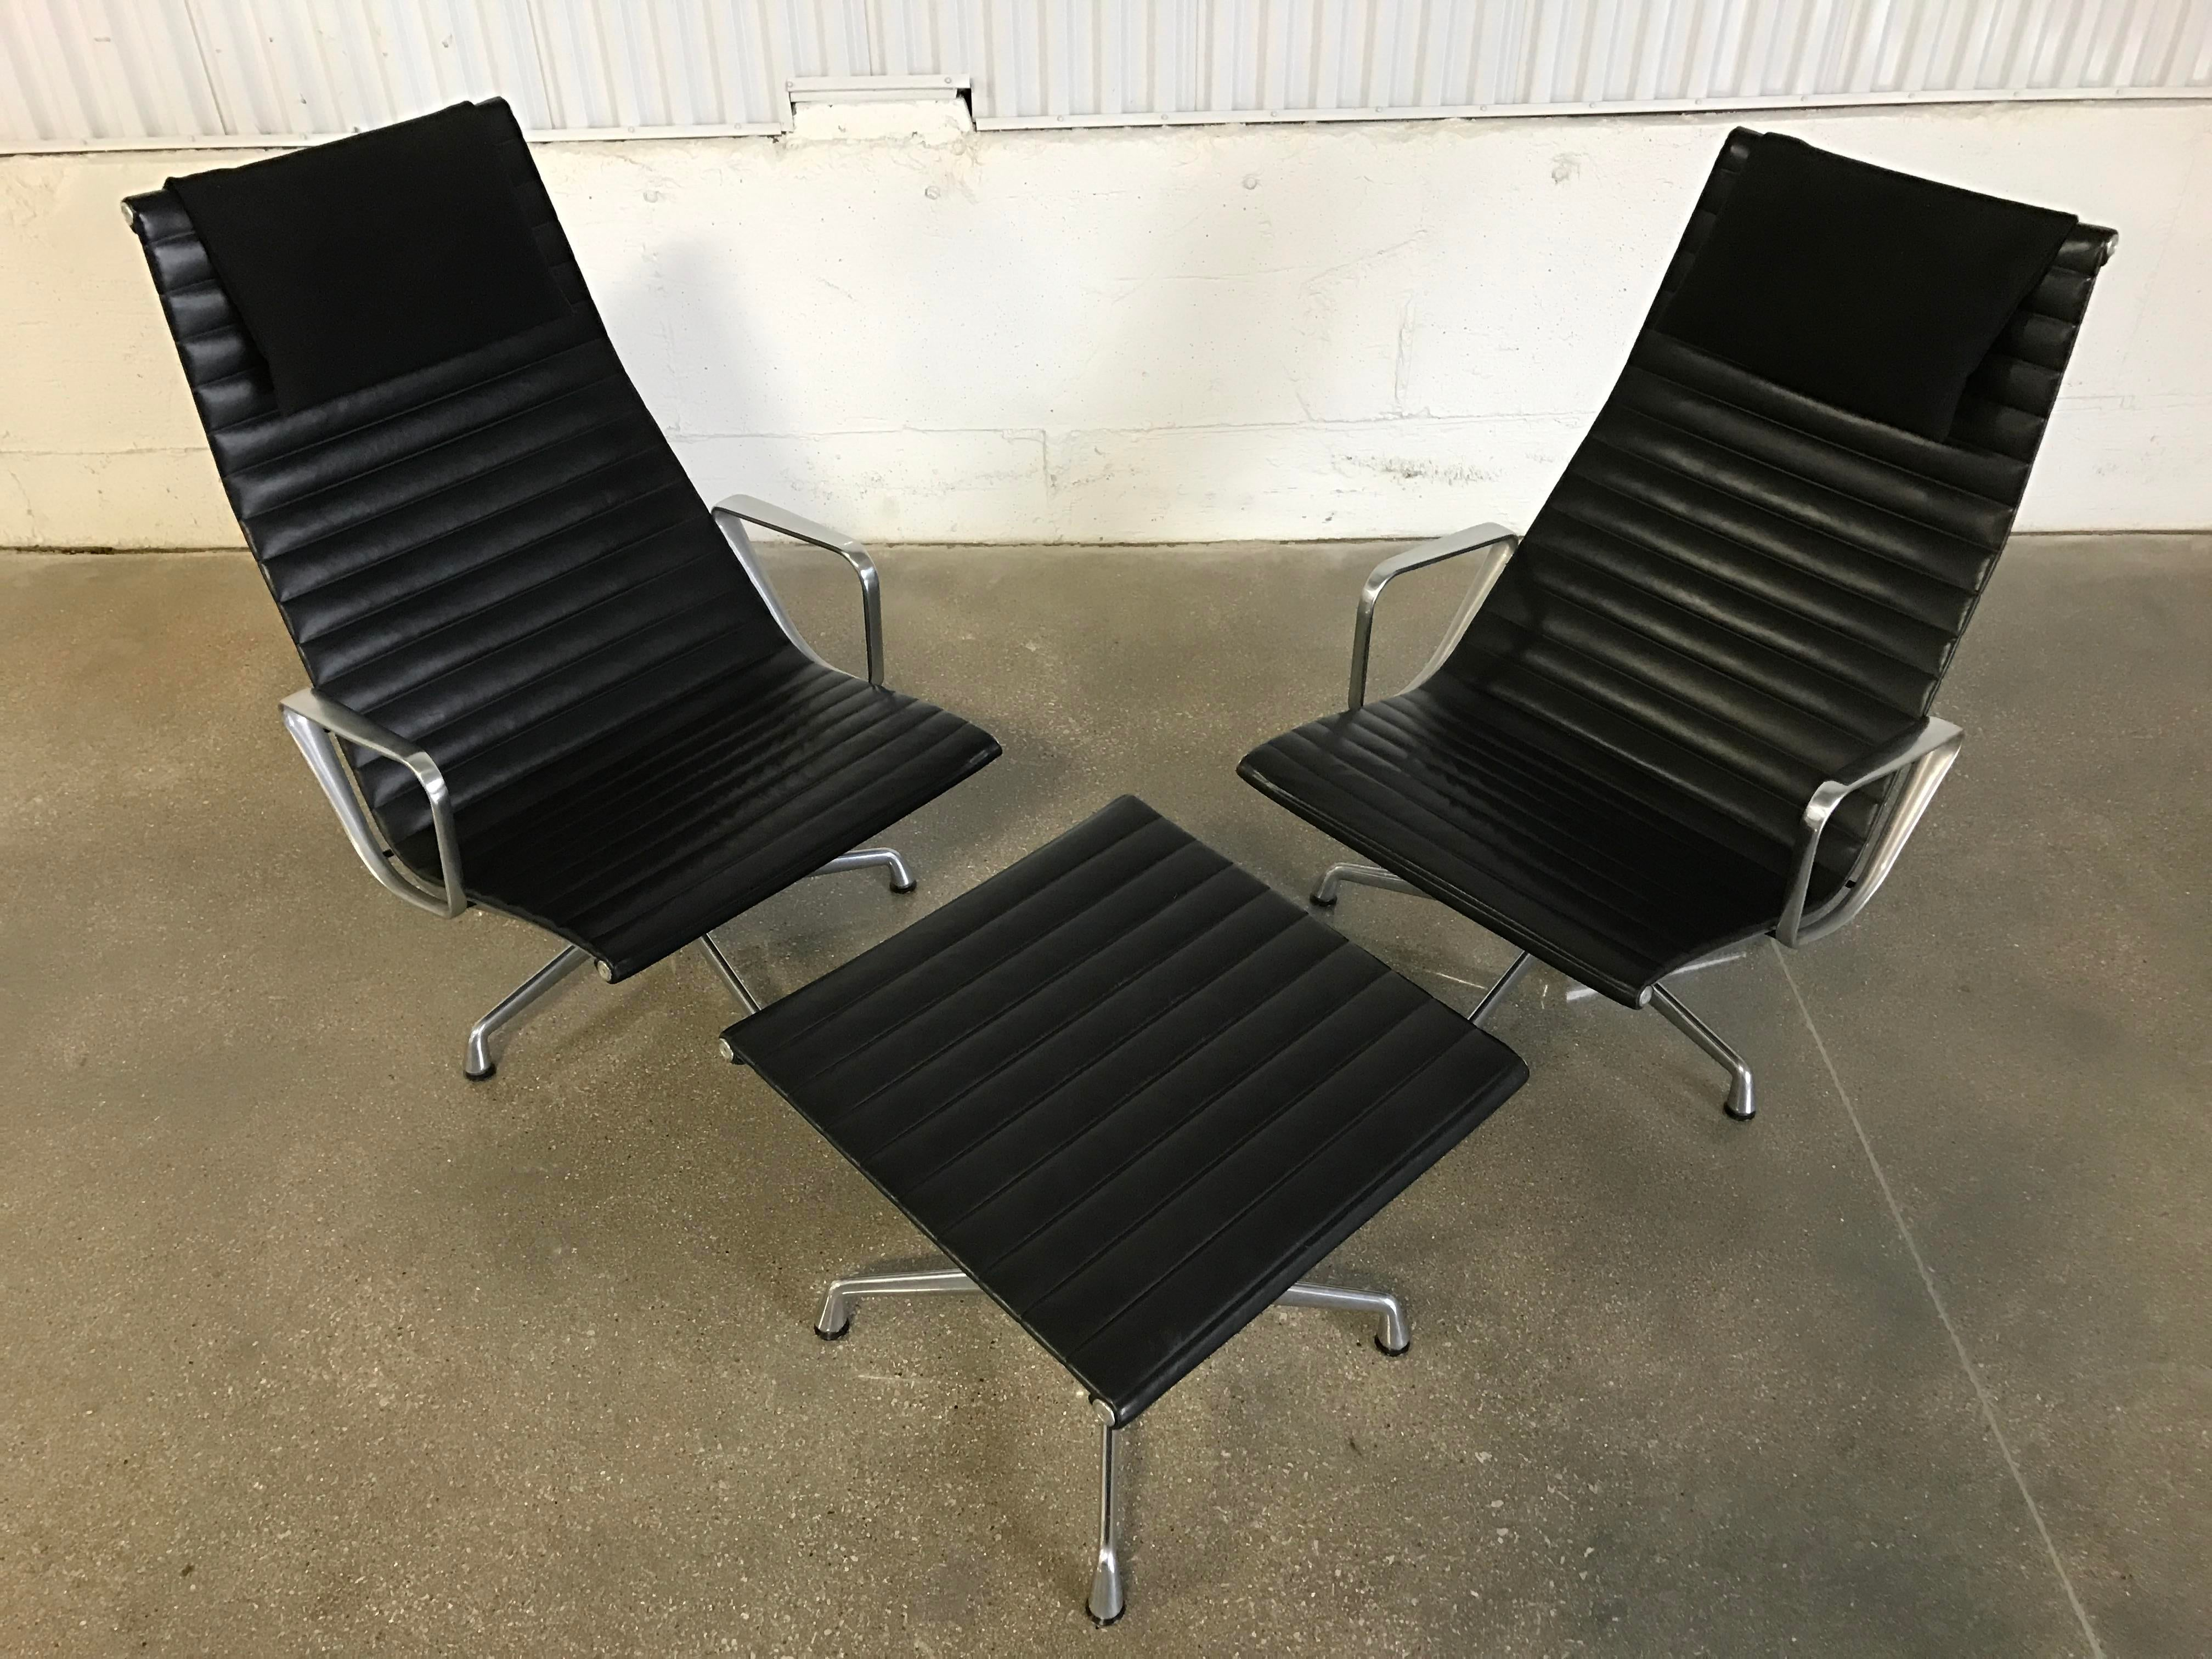 Vintage Herman Miller Eames Aluminum Group Lounge Chairs U0026 Ottoman   Set Of  3   Image